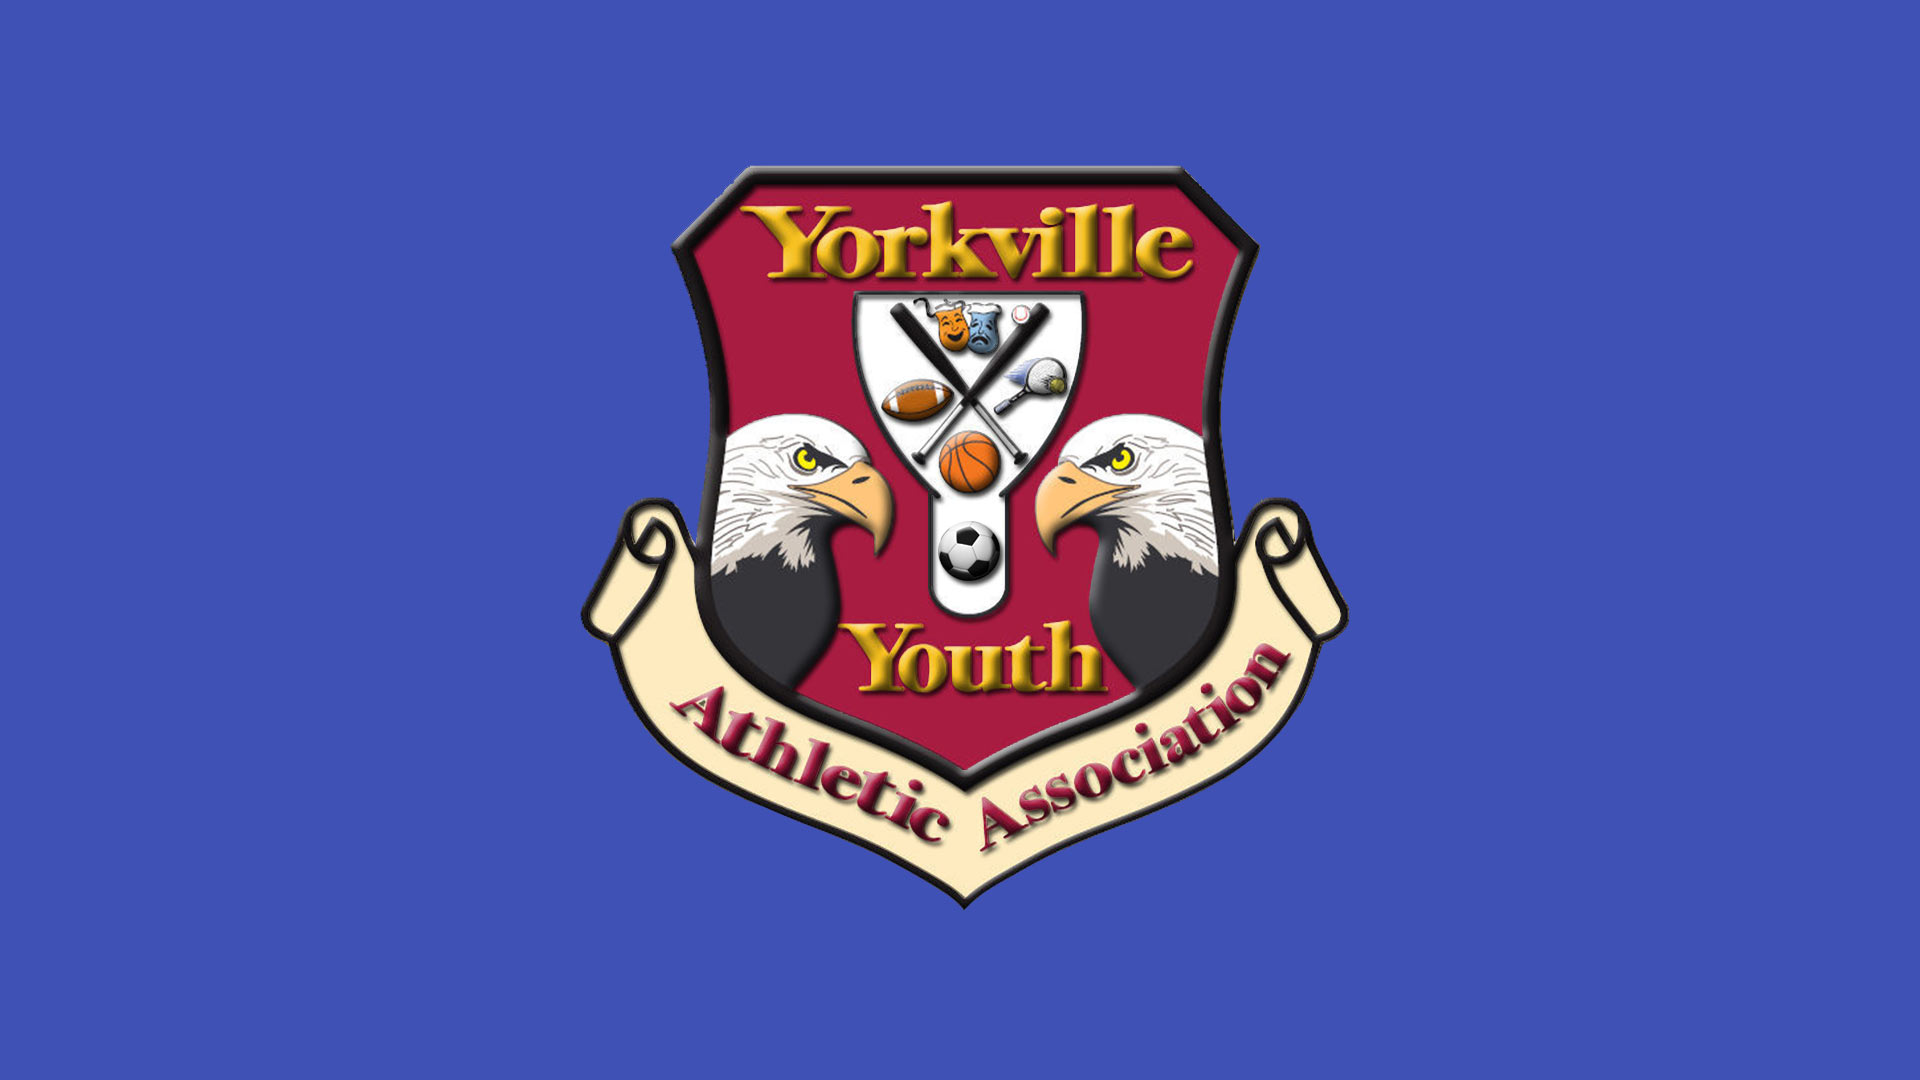 Yorkville Athletic Association